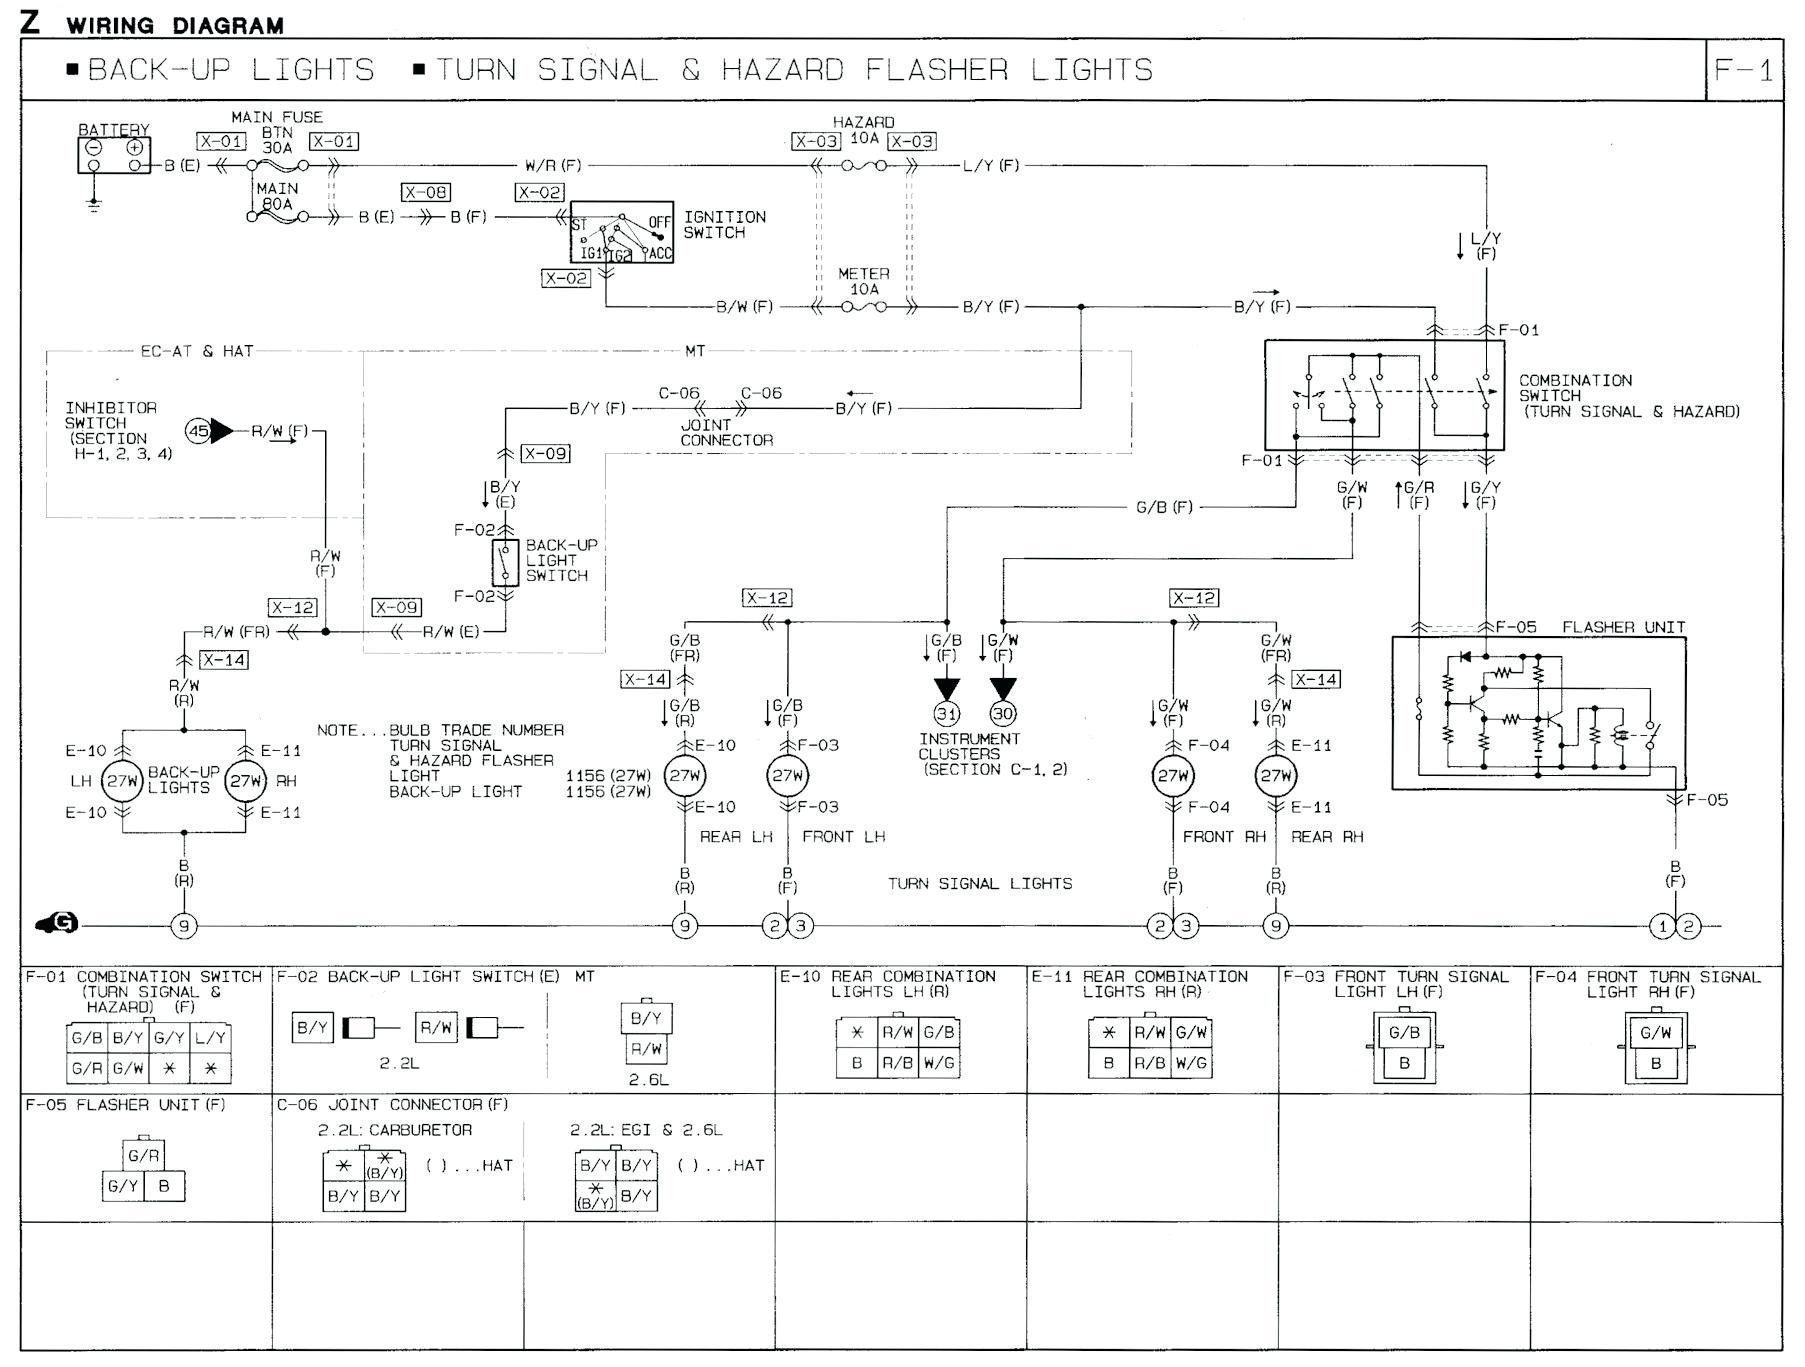 1986 Mazda B2000 Engine Diagram Christie Pacific Machinery New And 1989 B2200 Erfreut Motordiagramm Galerie Elektrische Schaltplan Of